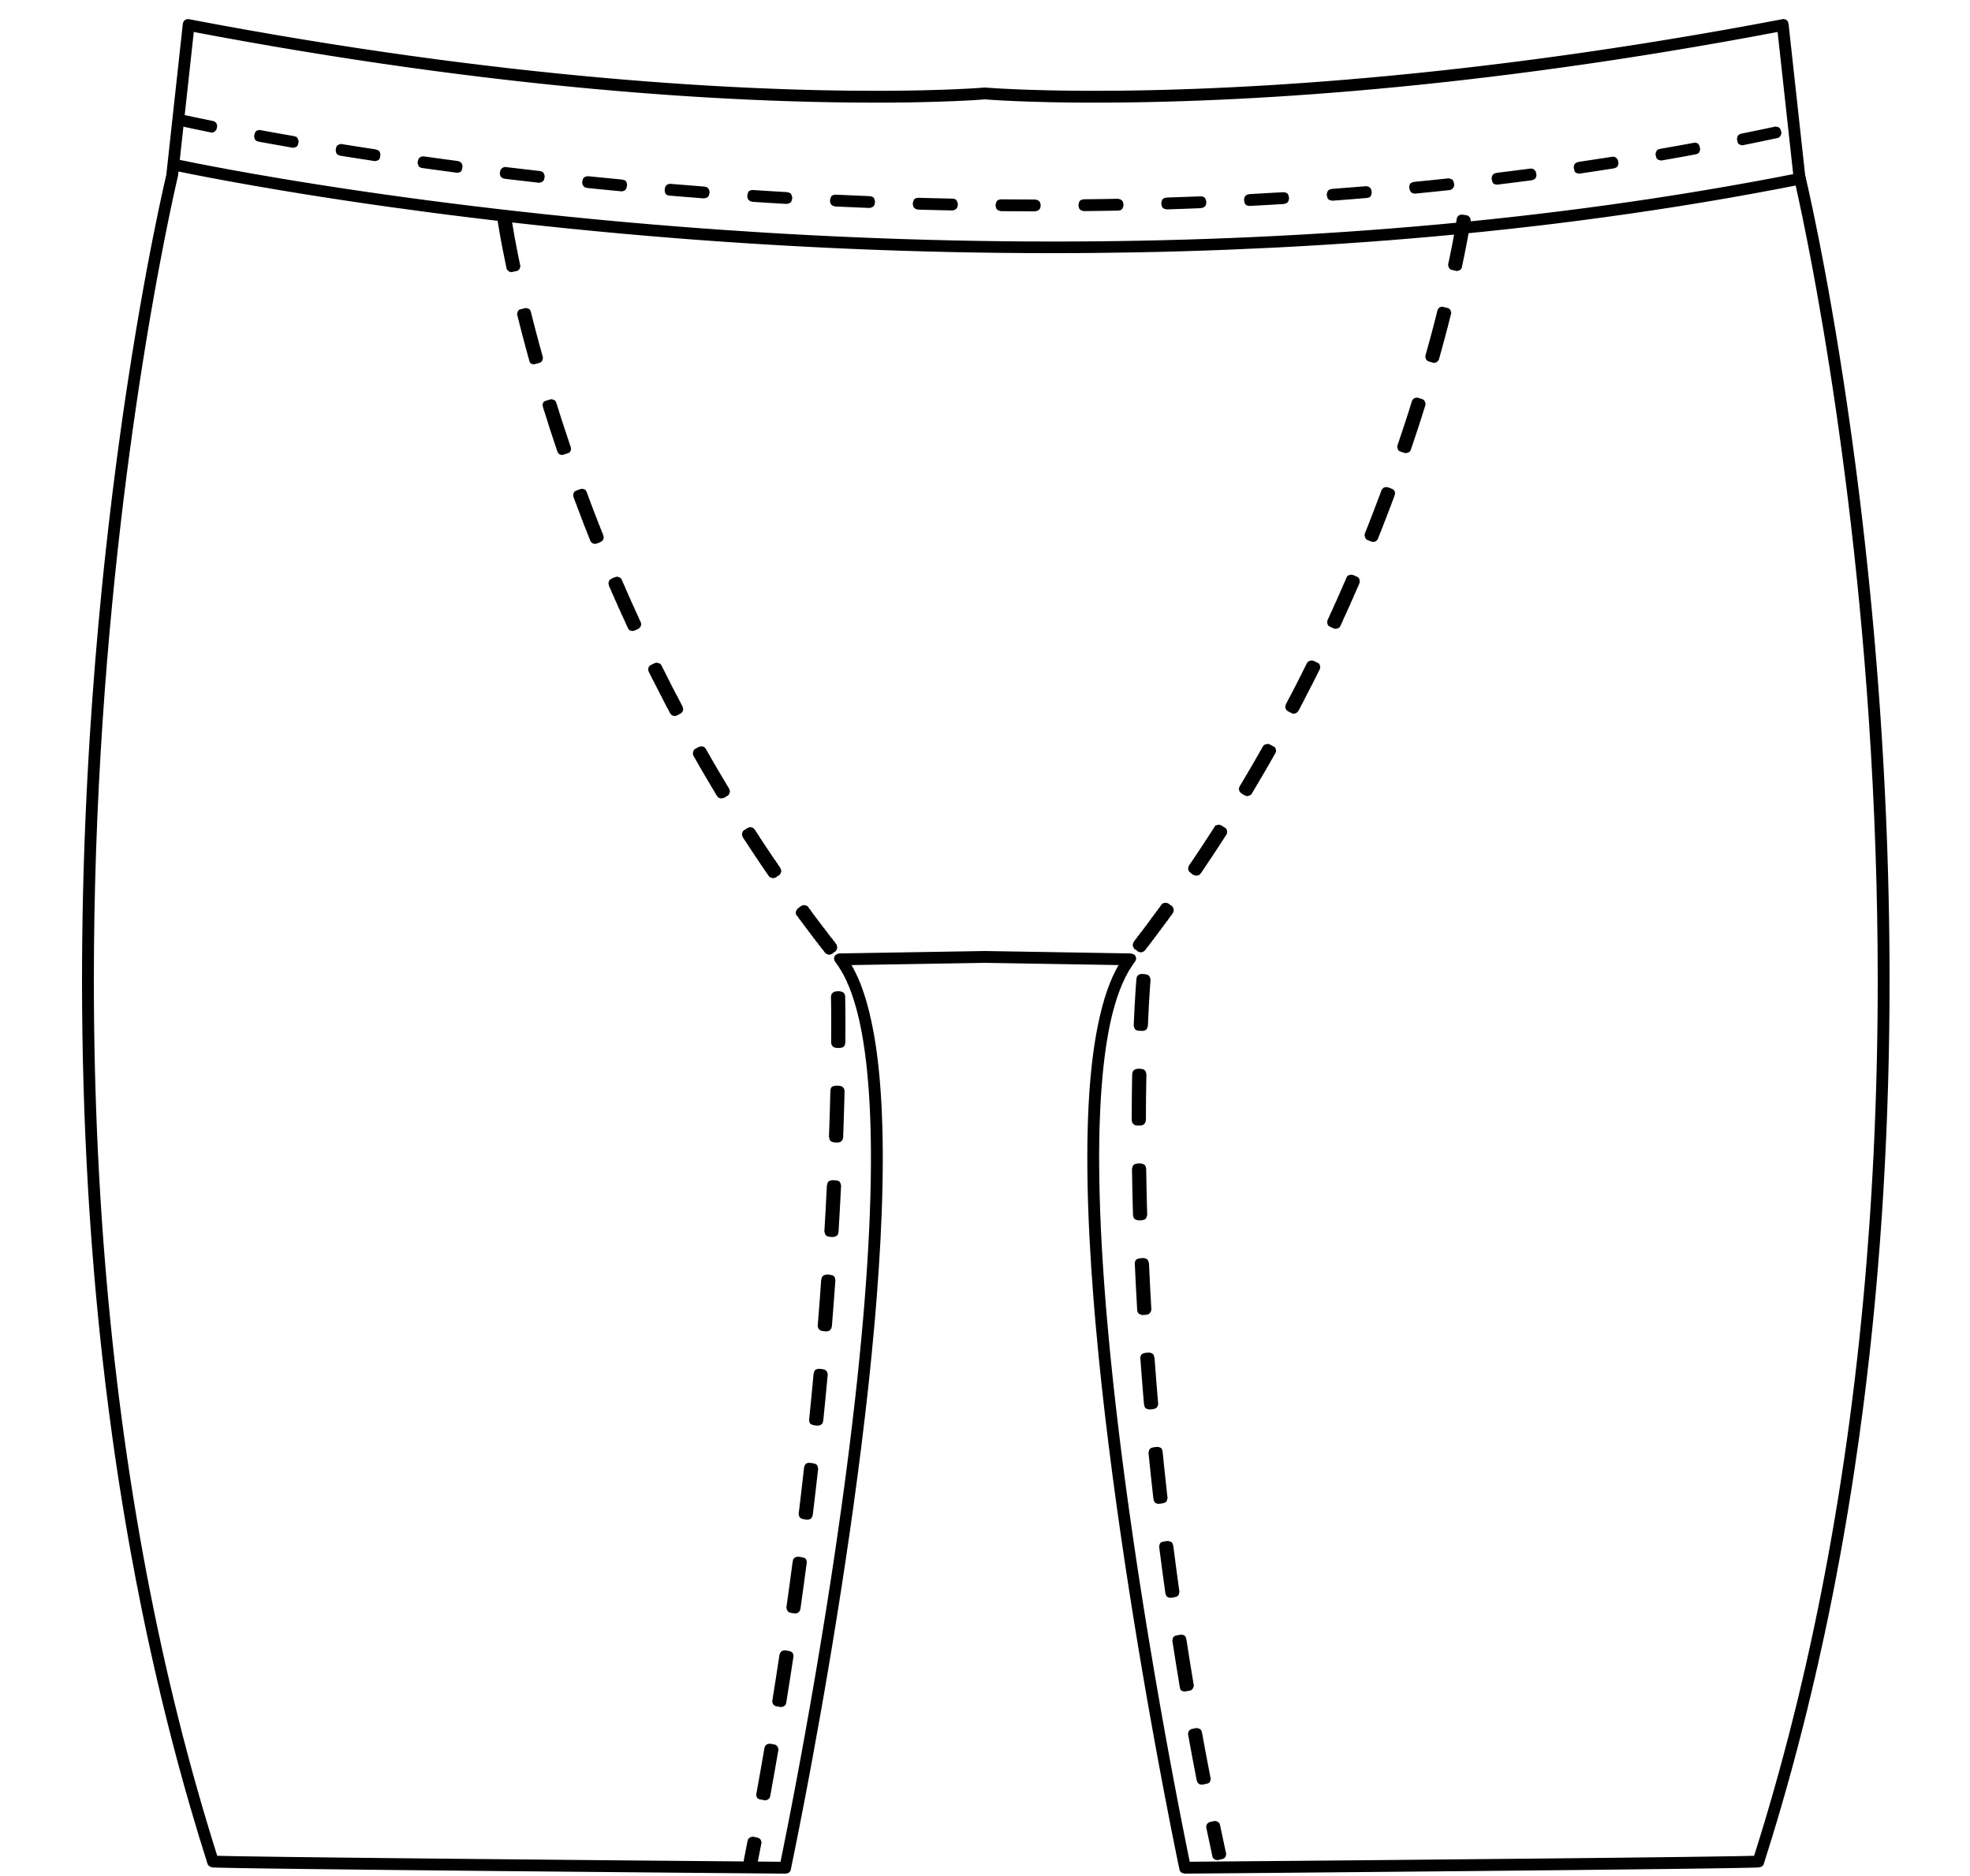 Mens custom bike short pattern for use with latex, vinyl, or other fabrics. thumbnail image.